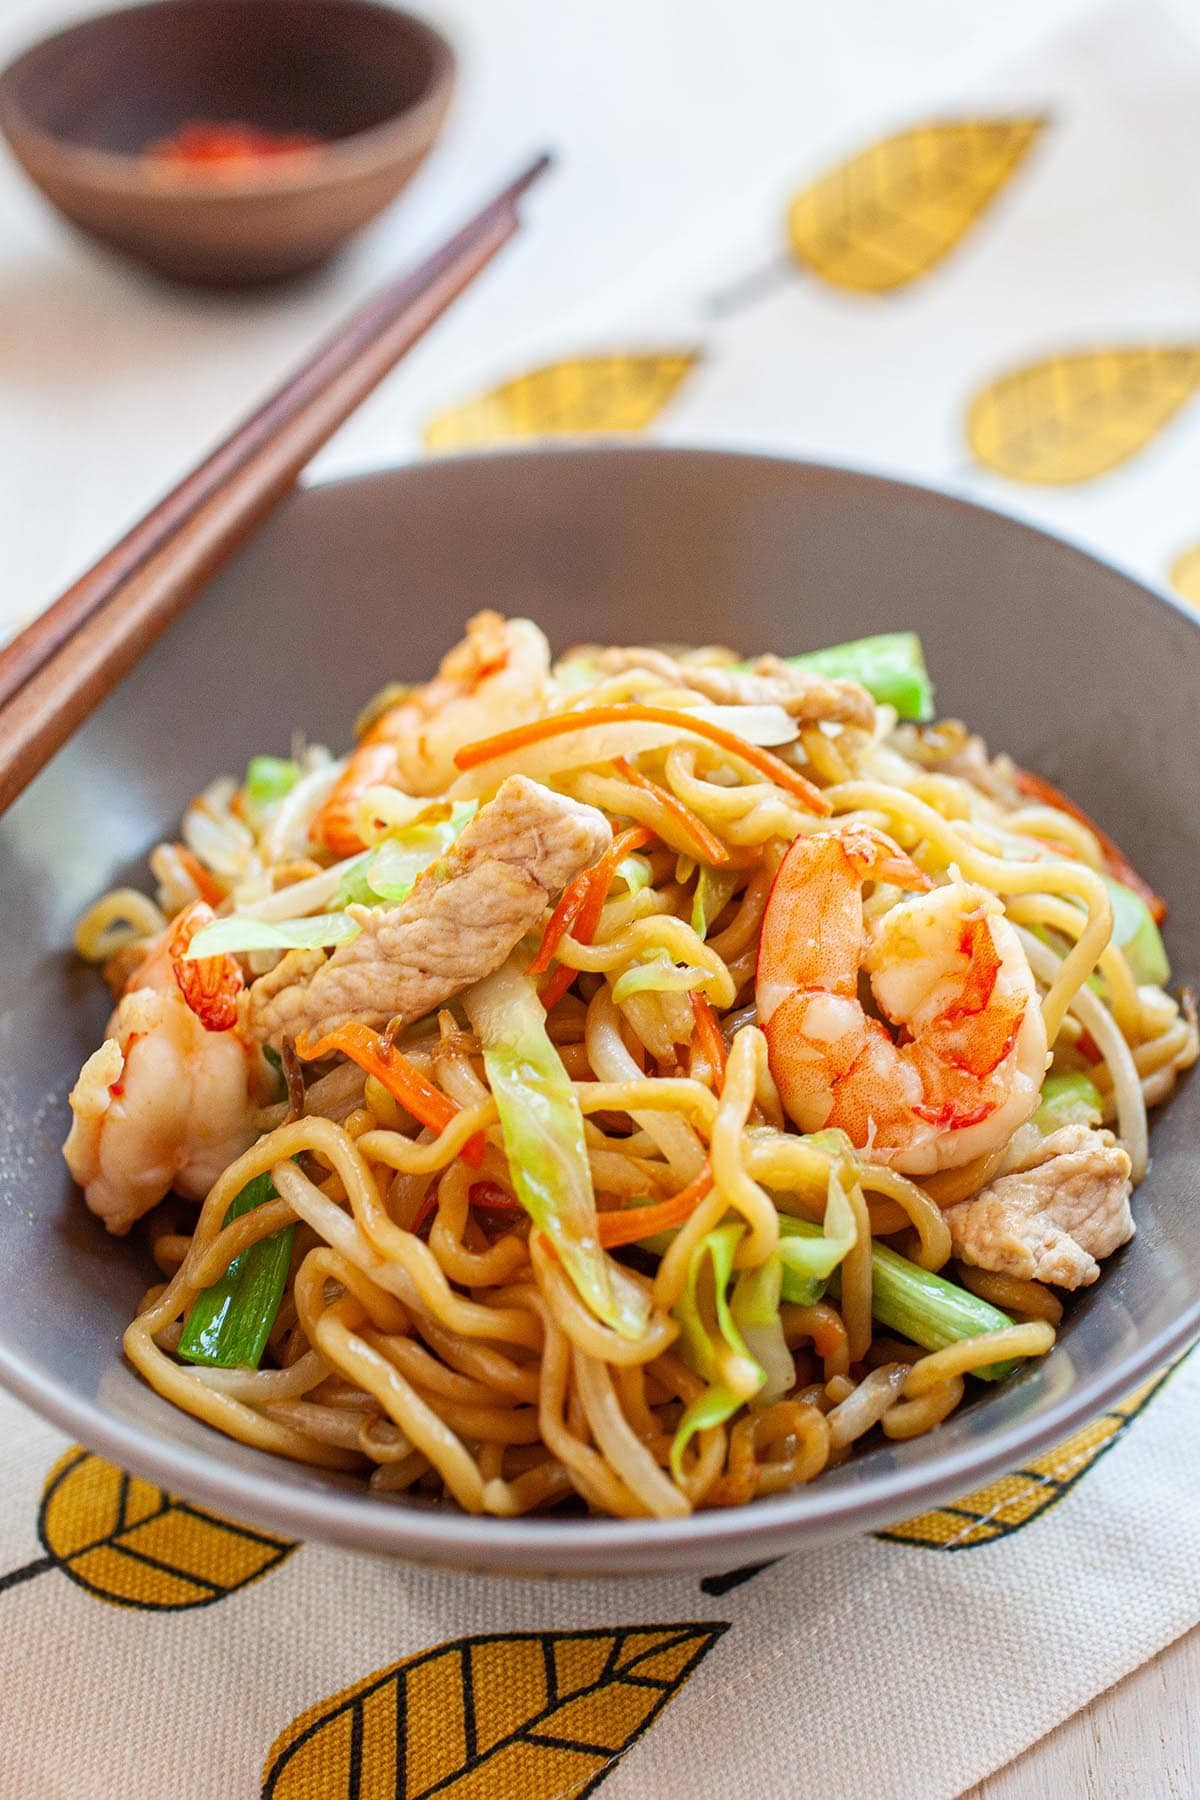 Chow Mein noodles with shrimp, chicken and vegetables.